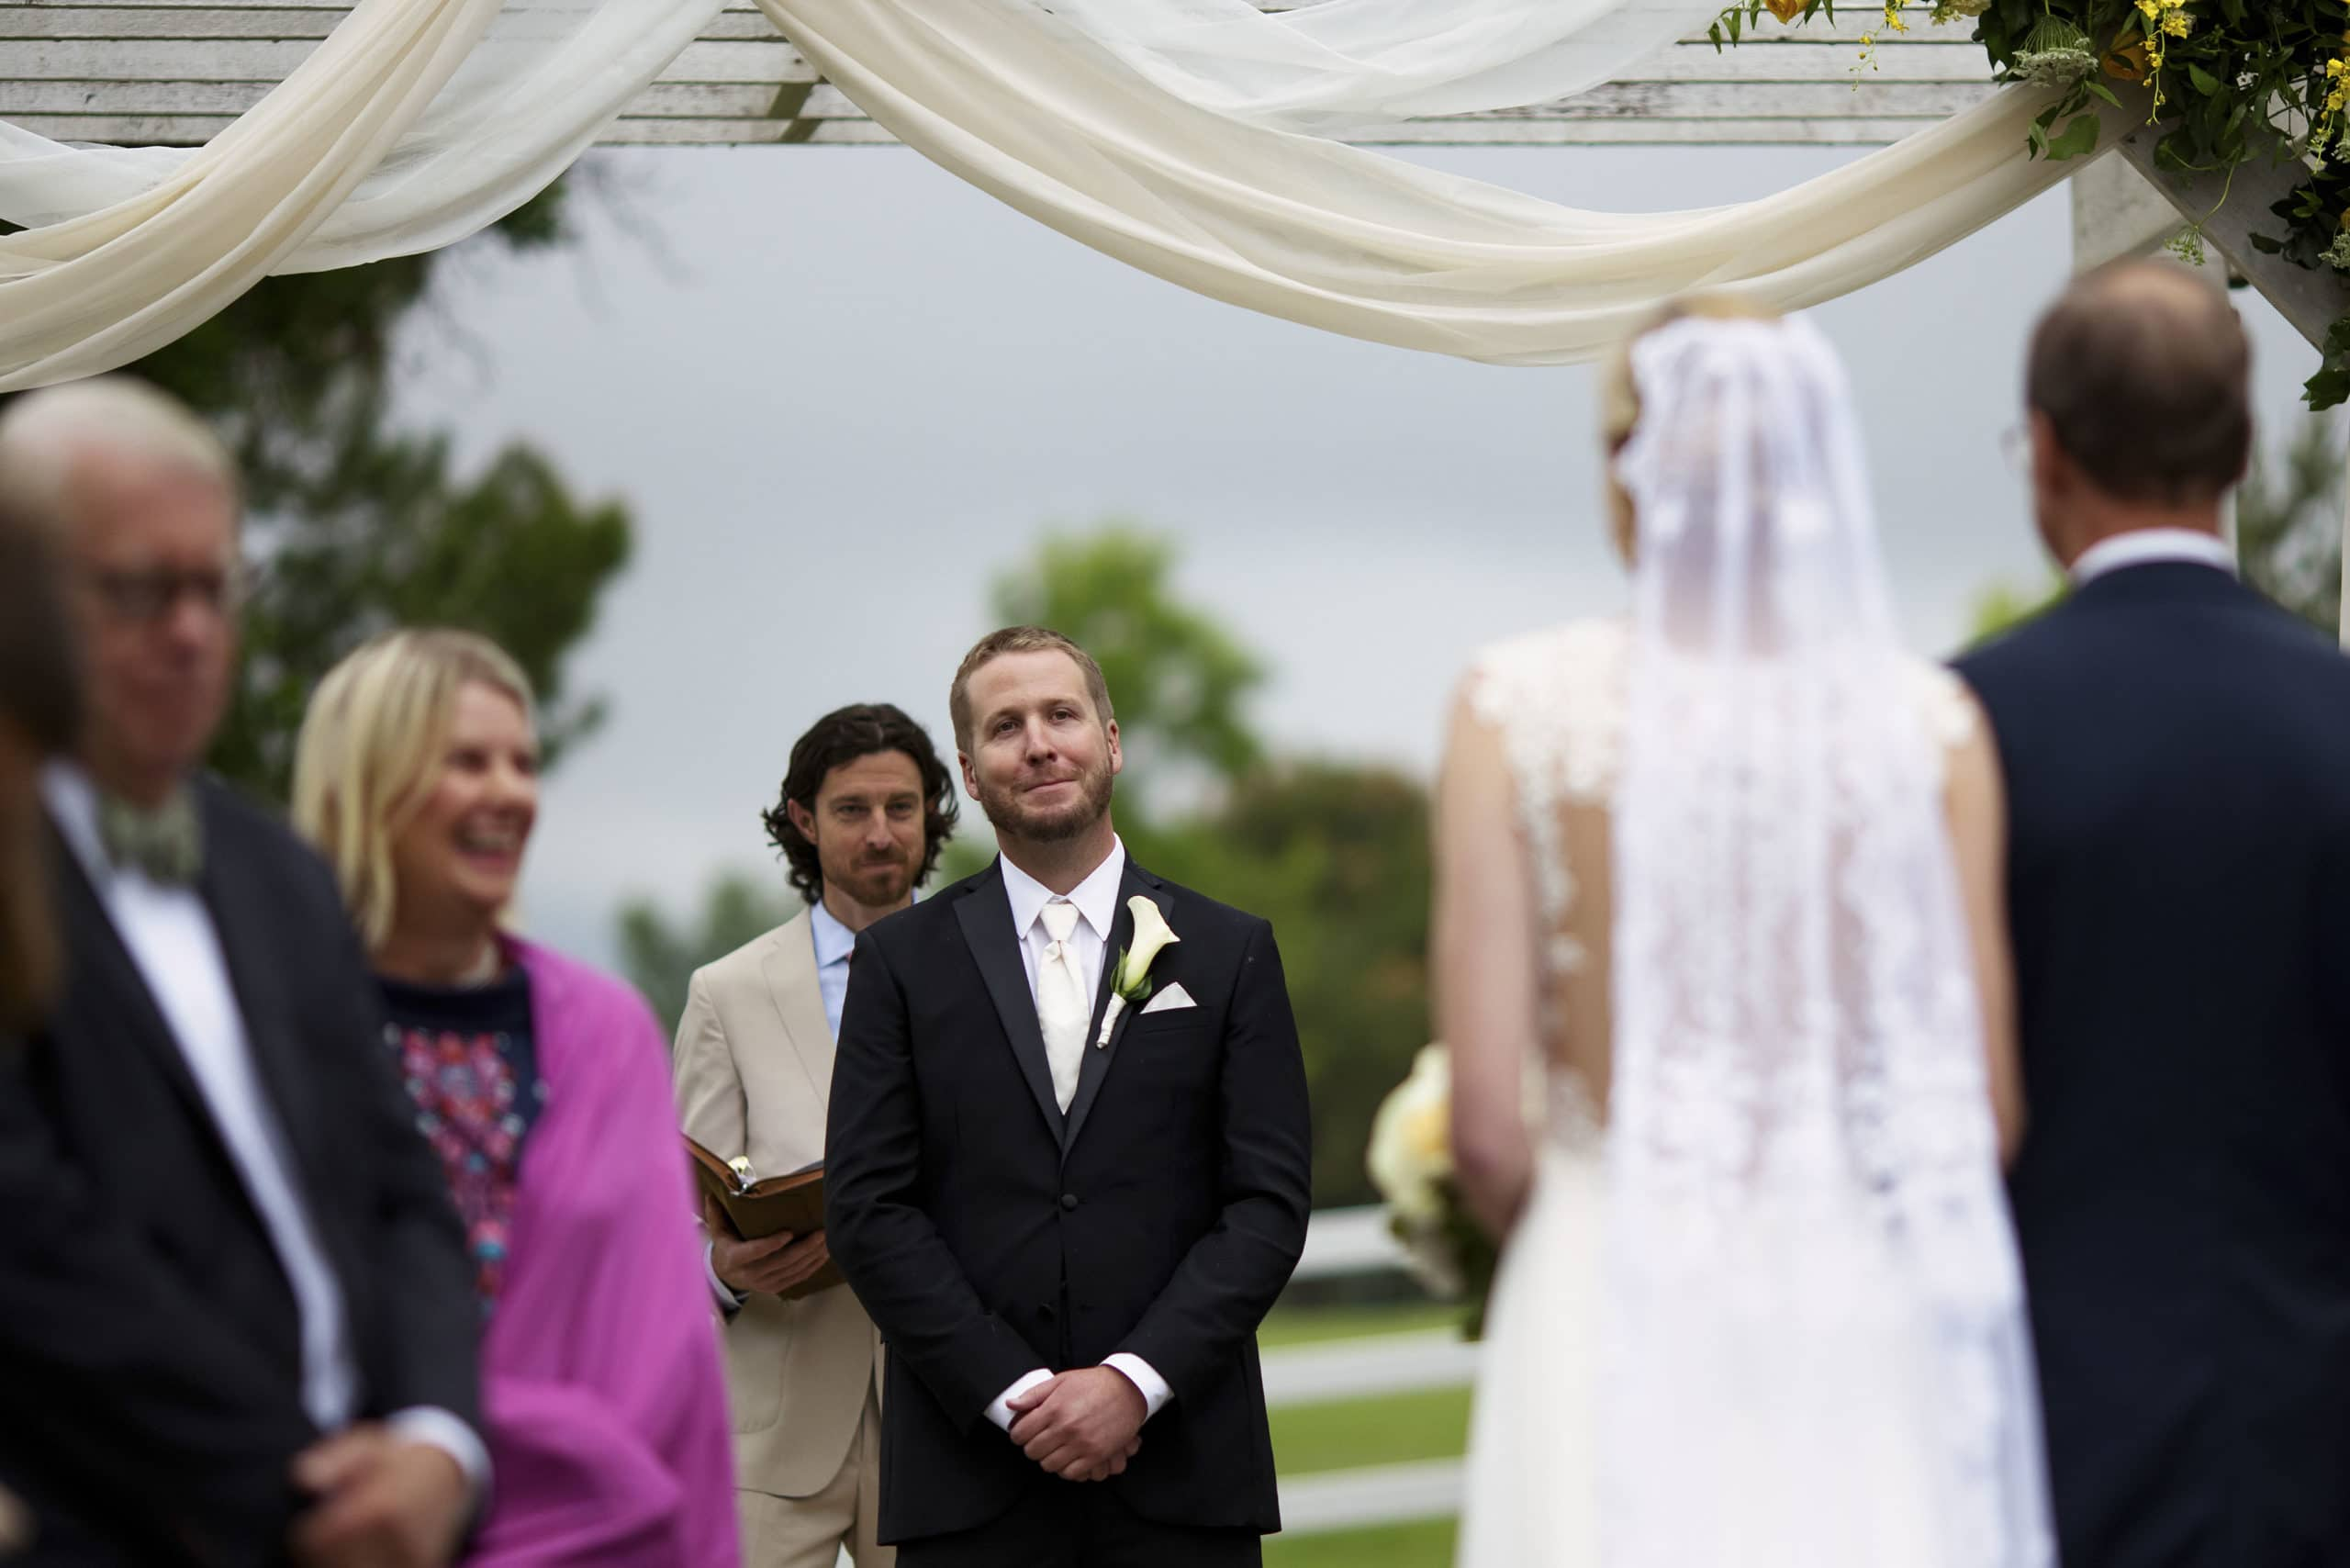 The groom sees the bride as she walks down the aisle